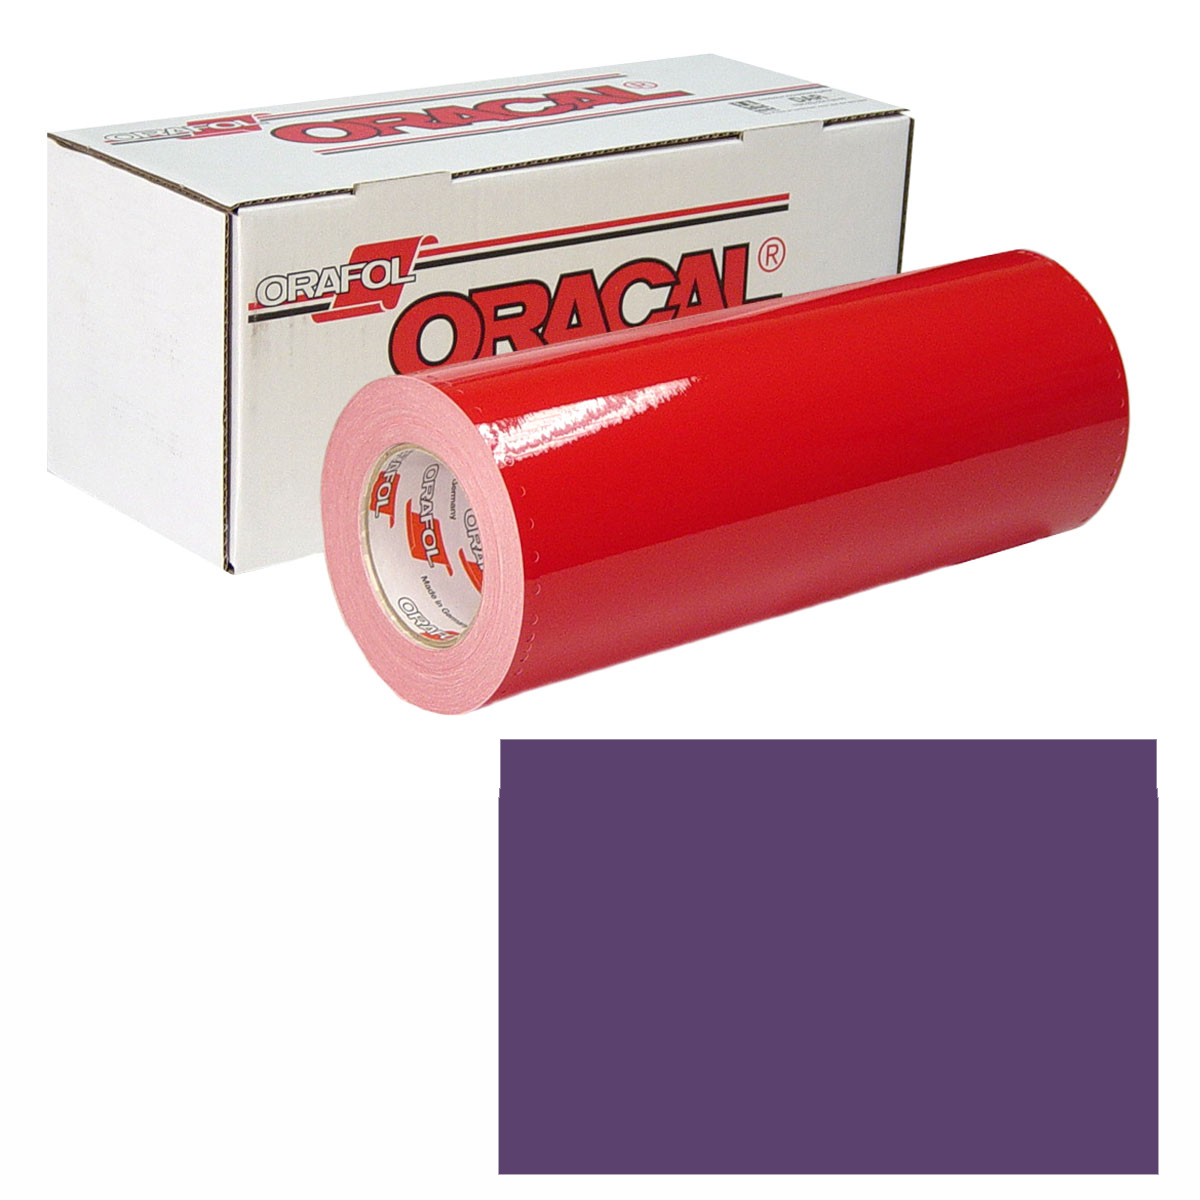 ORACAL 951M 15In X 10Yd 406 Violet